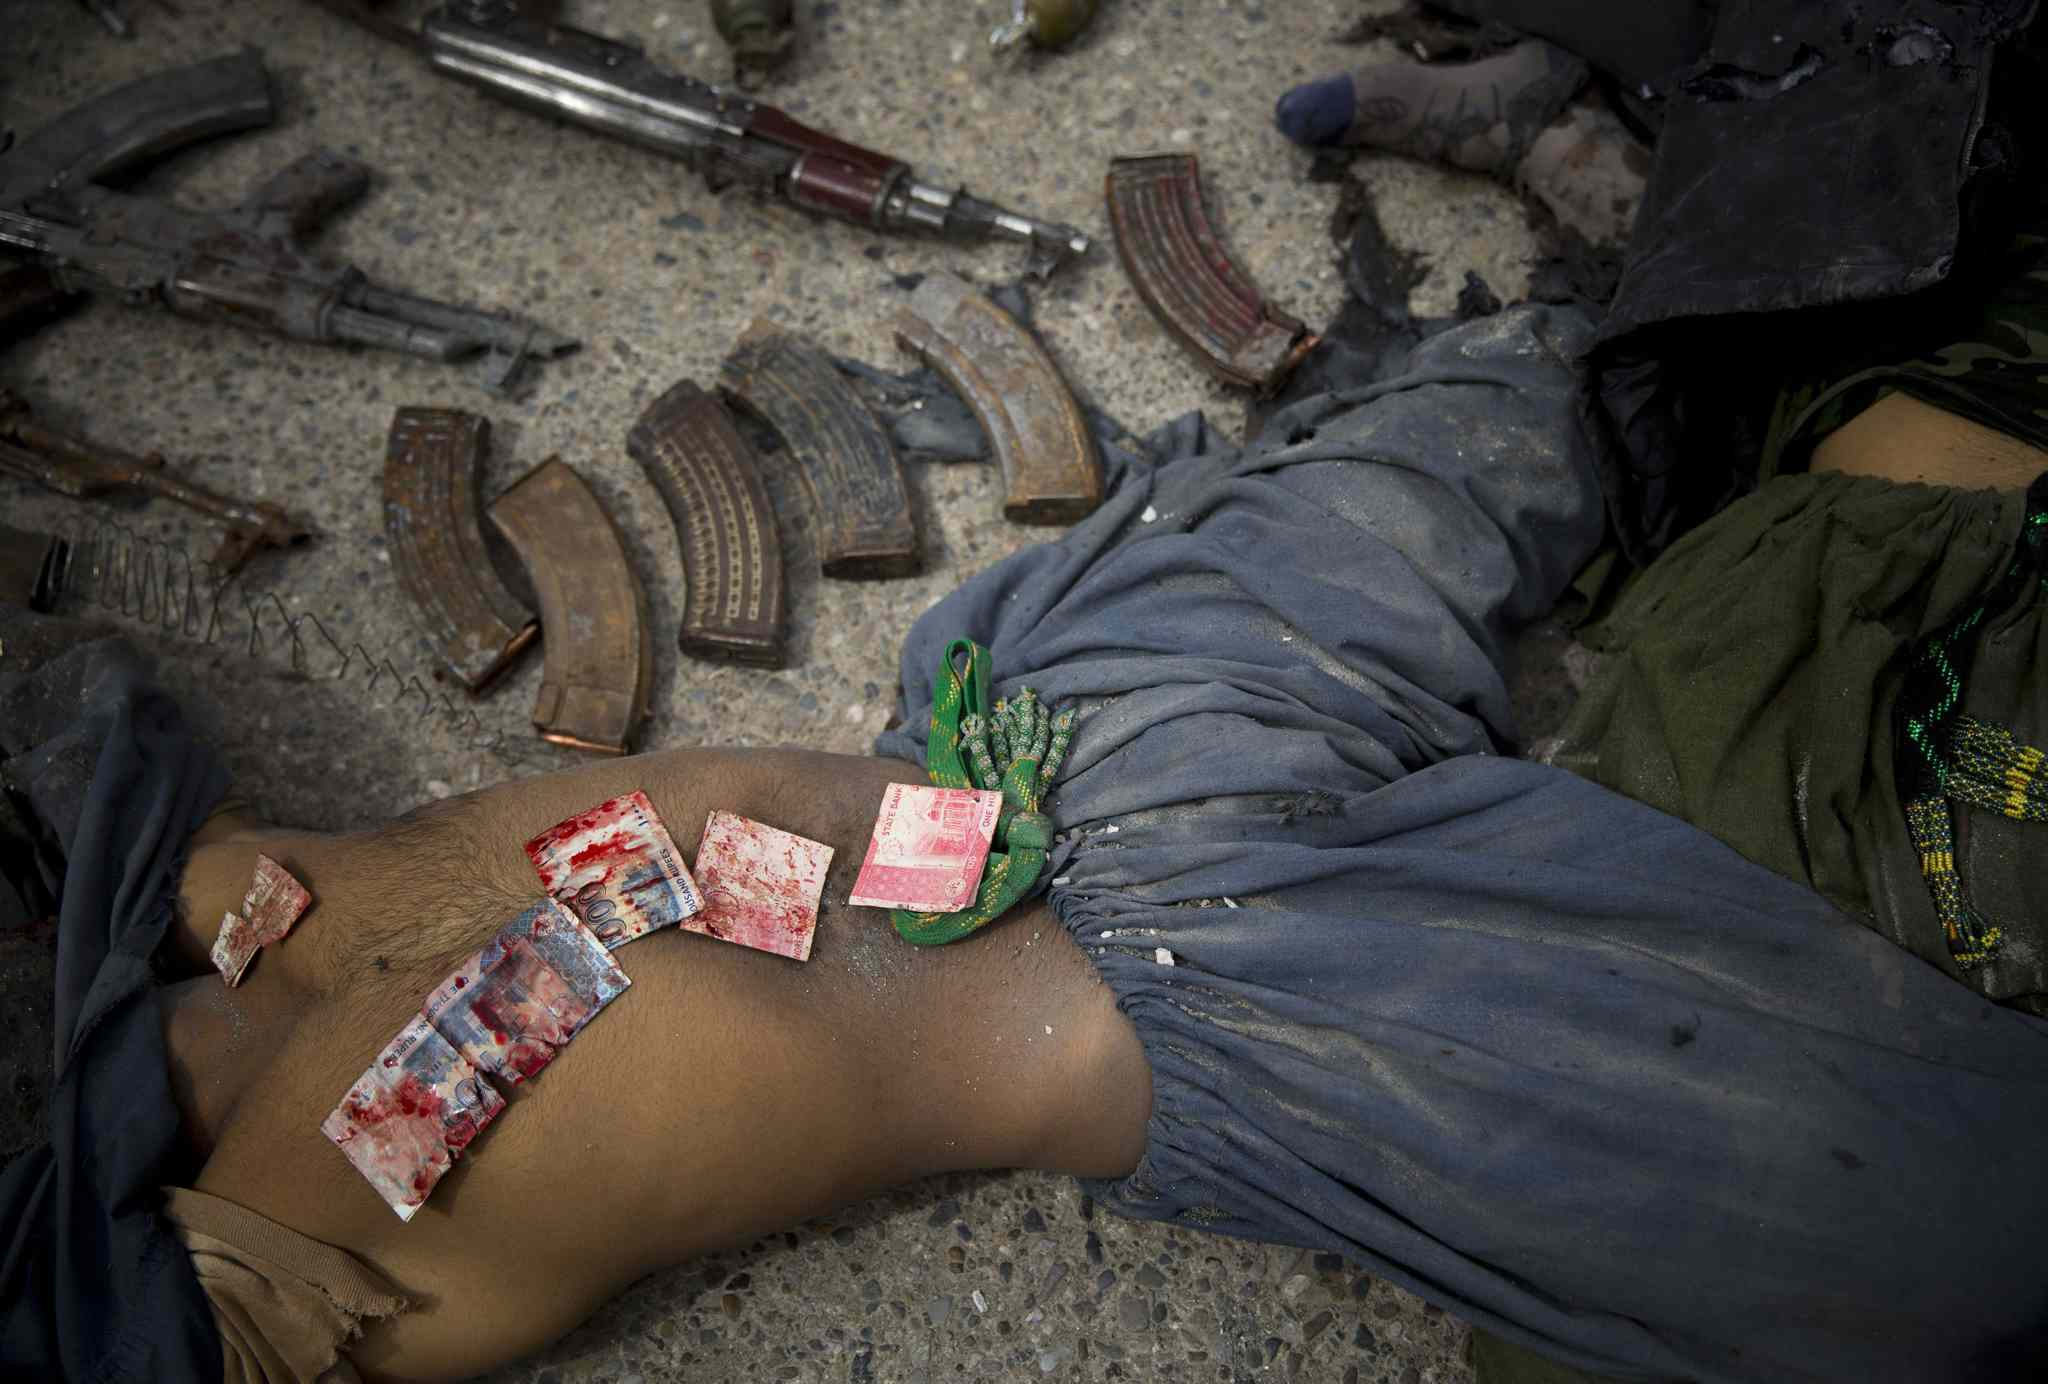 March 12, 2014: Pakistani bank notes covered in blood are displayed on the body of a dead suicide bomber after police found them in his pocket after an attack on the former Afghan intelligence headquarters, in the center of Kandahar, Afghanistan.